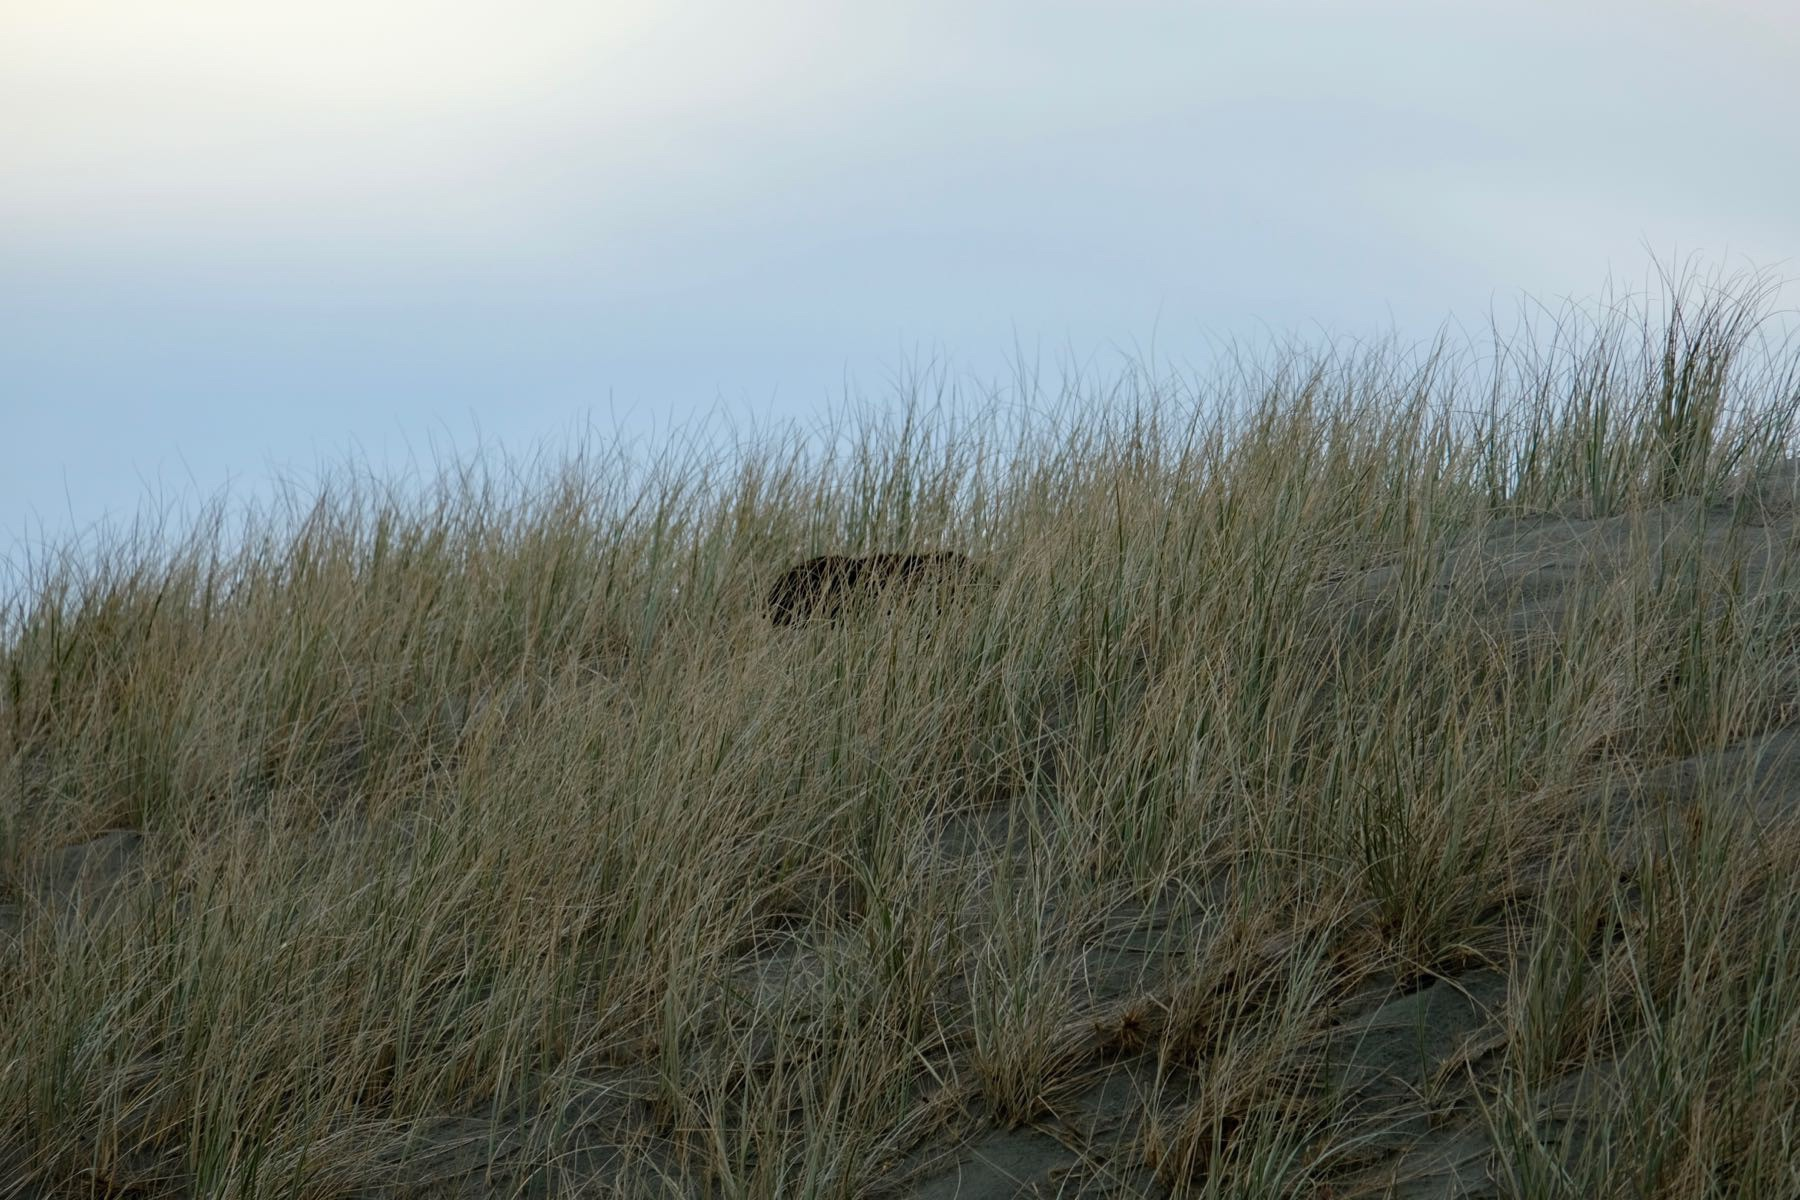 Dog-like shape emerging from the marram grass on the dunes.